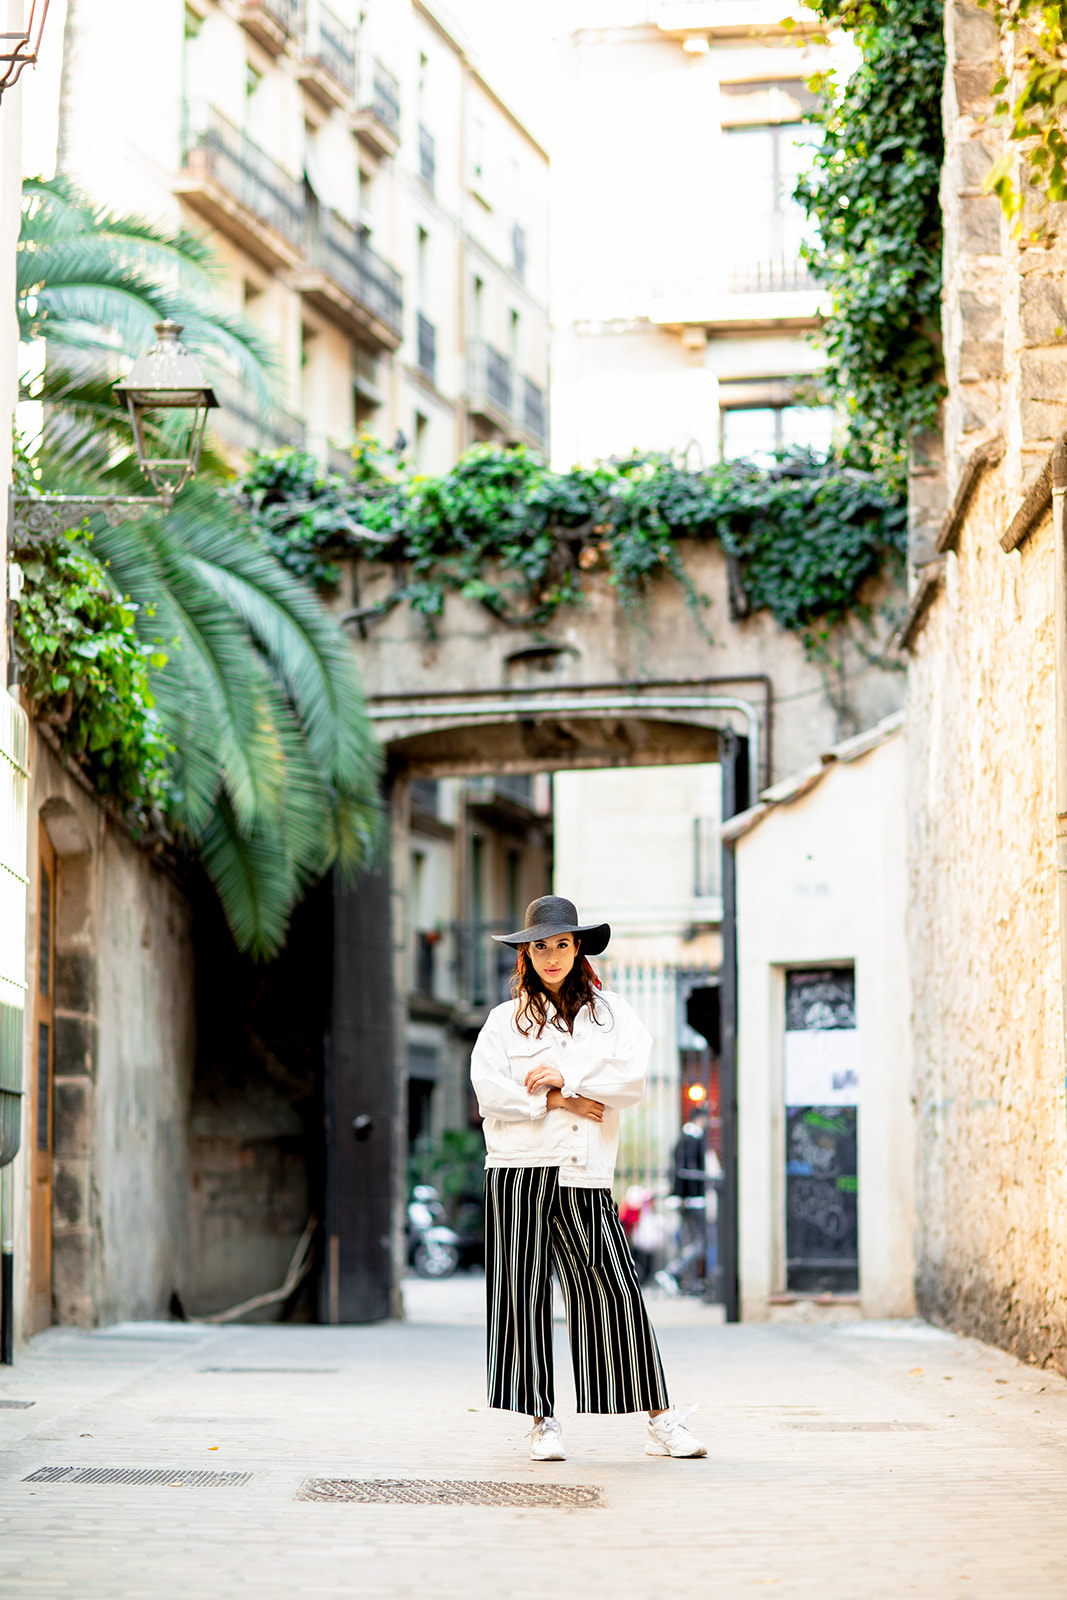 Barcelona Portrait Session in the Gothic Quarter - Image Property of www.j-dphoto.com